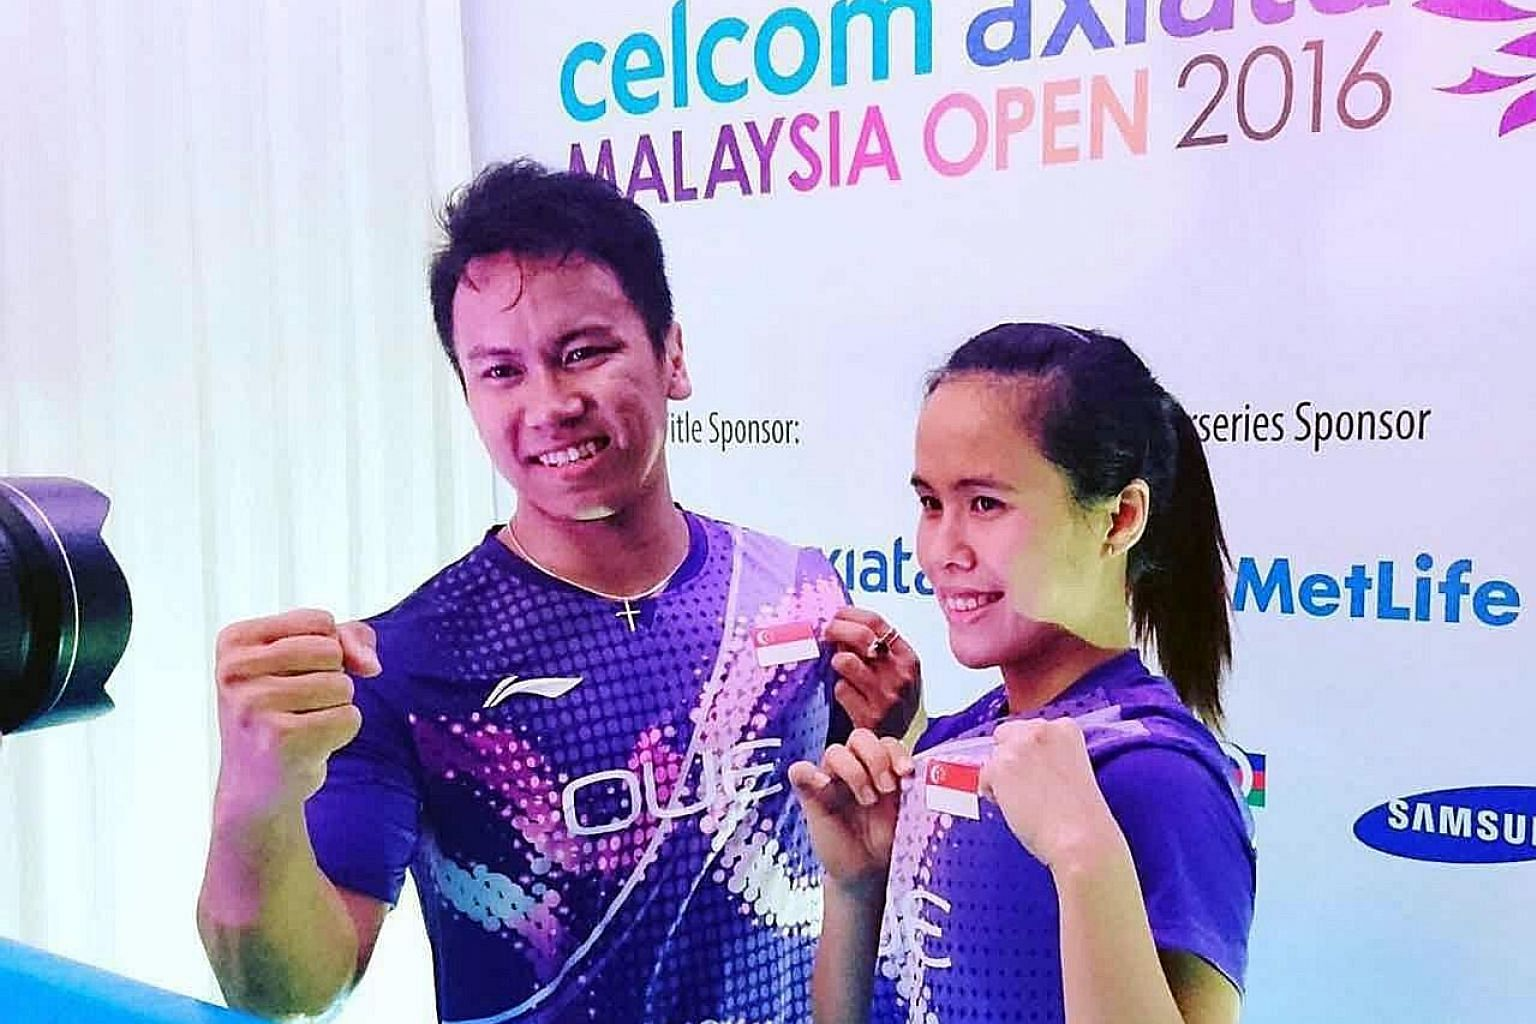 Danny Bawa Chrisnanta and Vanessa Neo's performance in Malaysia is their best on the circuit this year and gives them confidence for the Singapore Open next week.